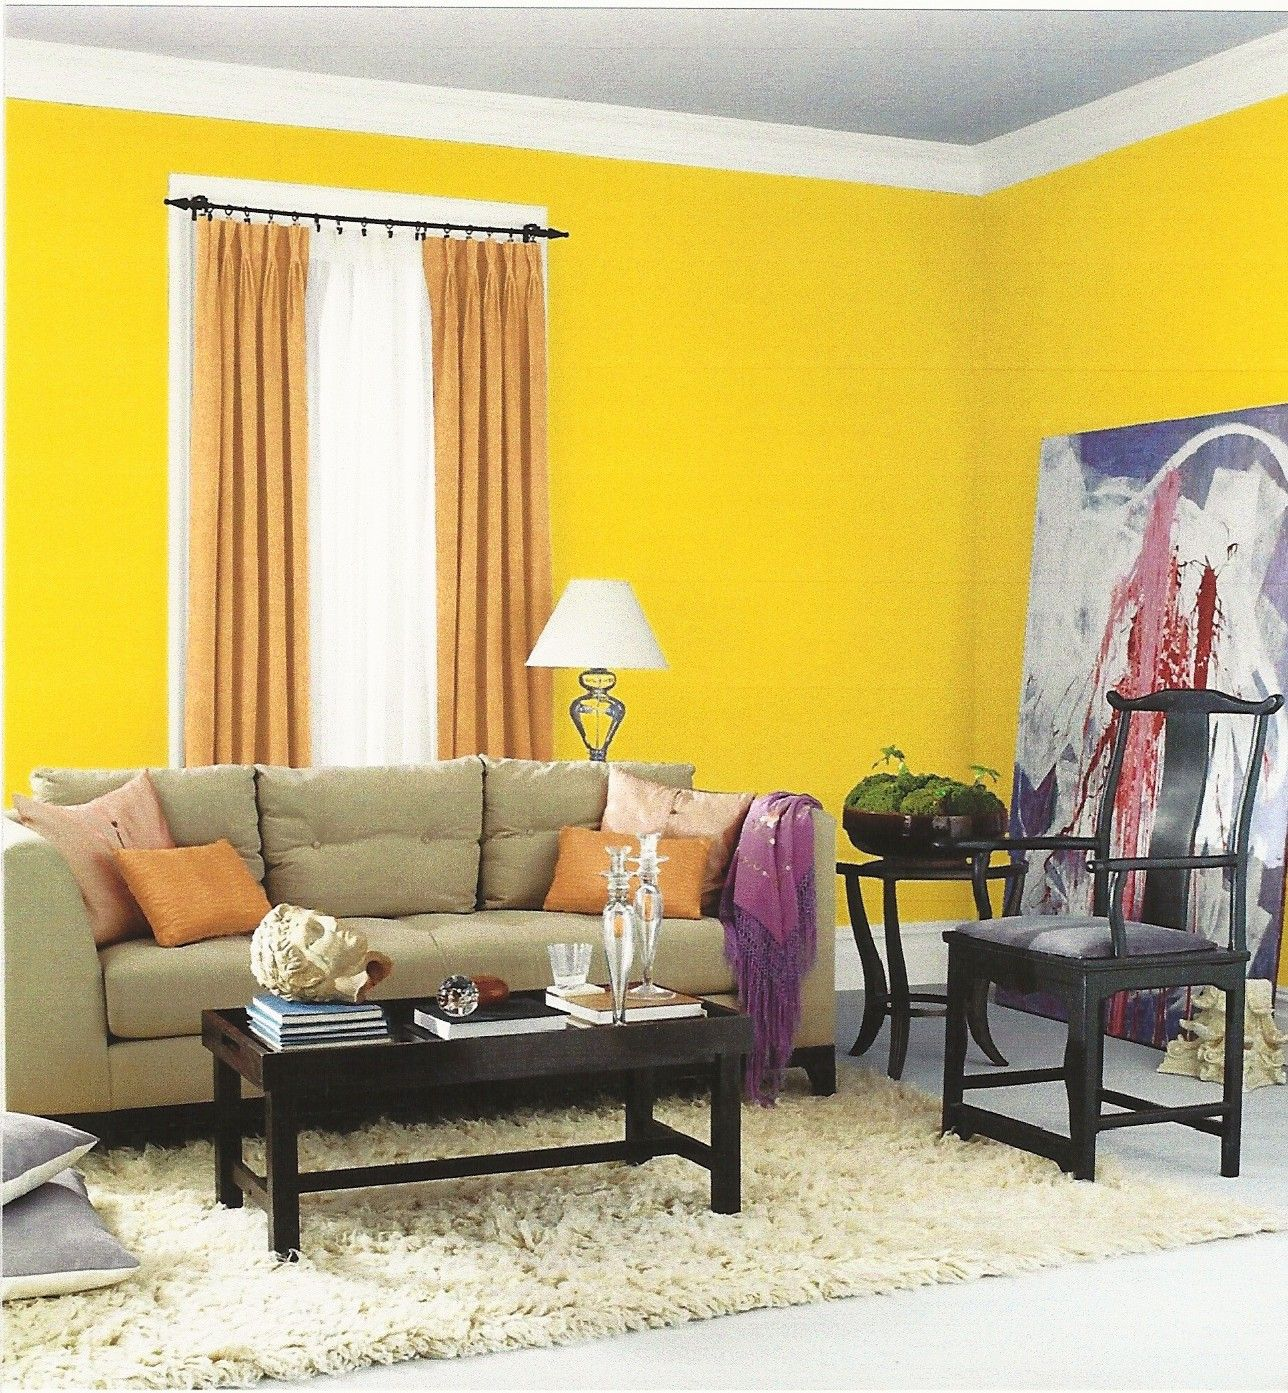 Living Room Yellow the beginner's guide to color psychology for interior design